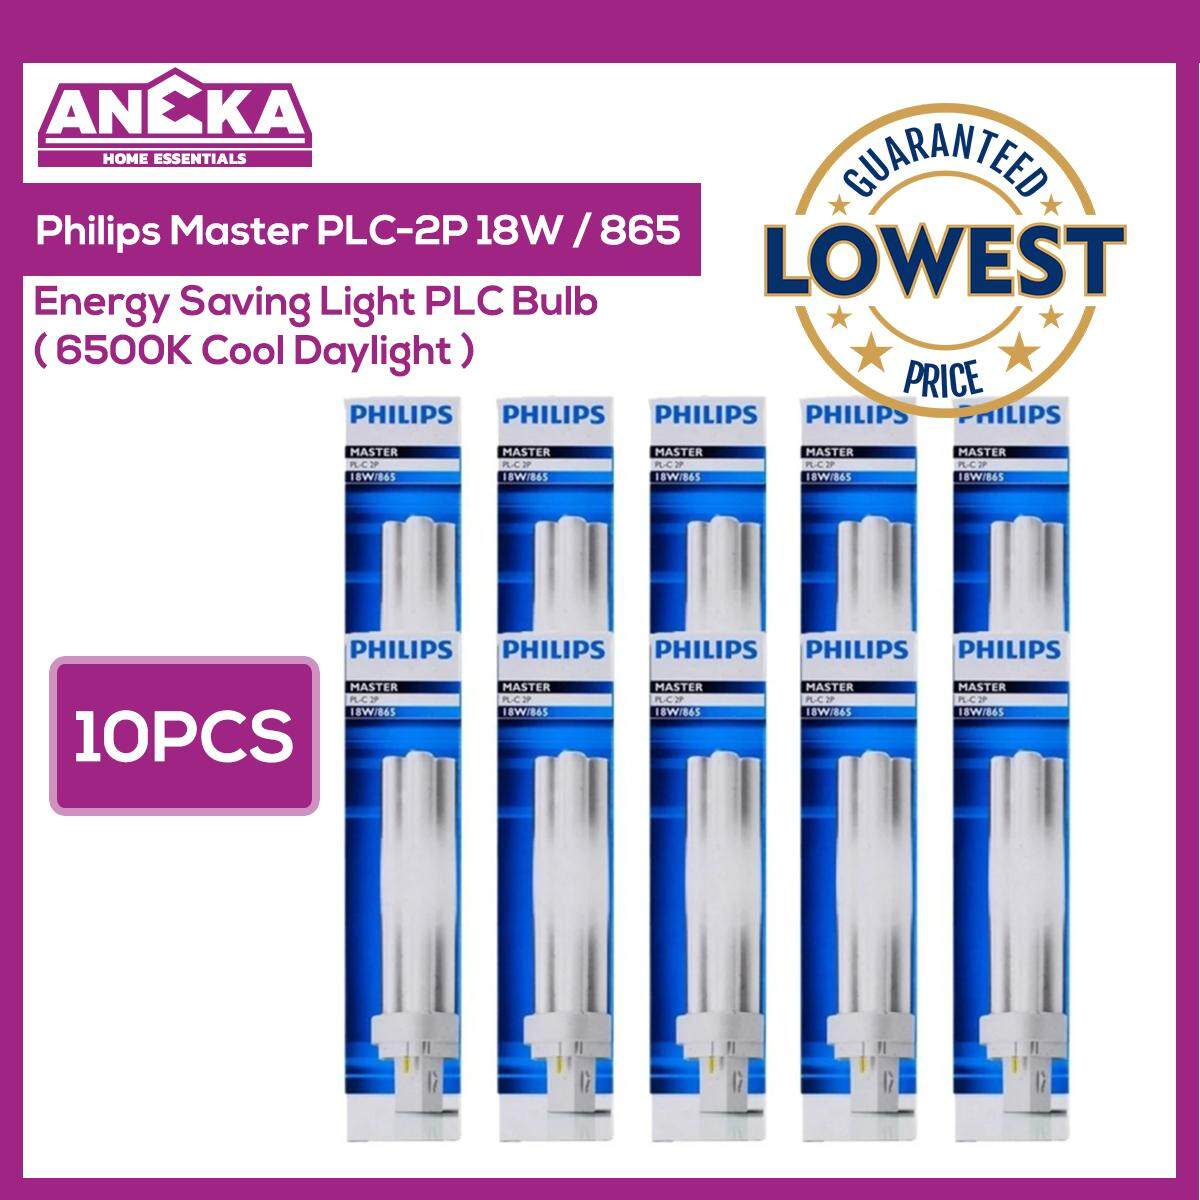 10 PCS Philips Master PLC-2P 18W / 865 / 827 Energy Saving Light PLC Bulb (  Cool Daylight / Warm White )